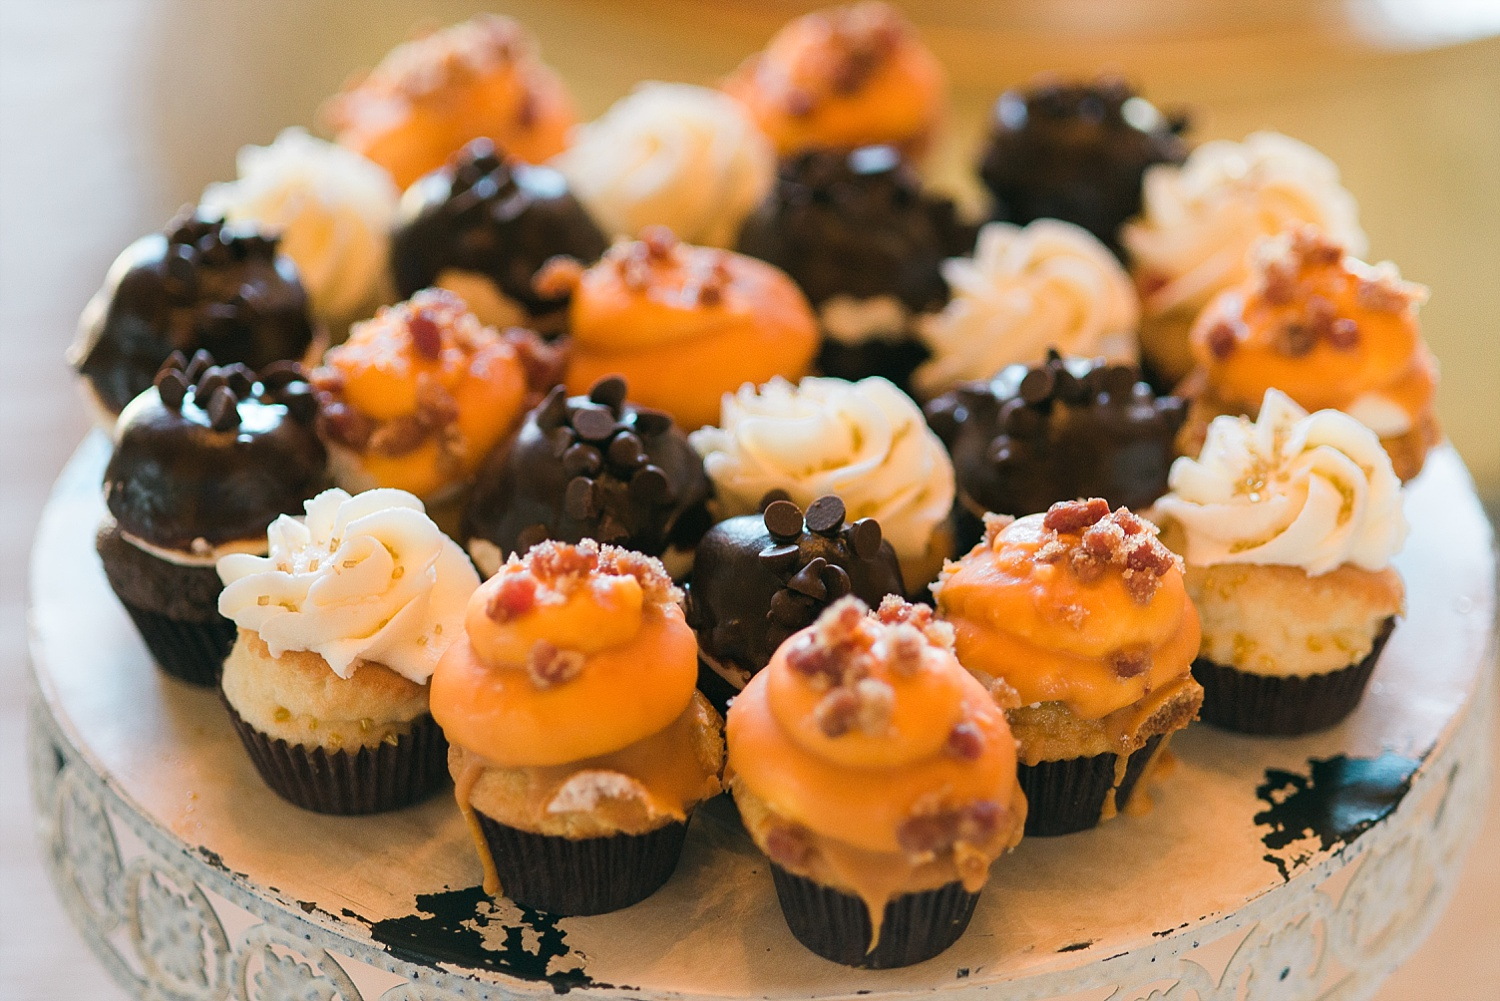 mini cupcakes by Sweets by Cindy